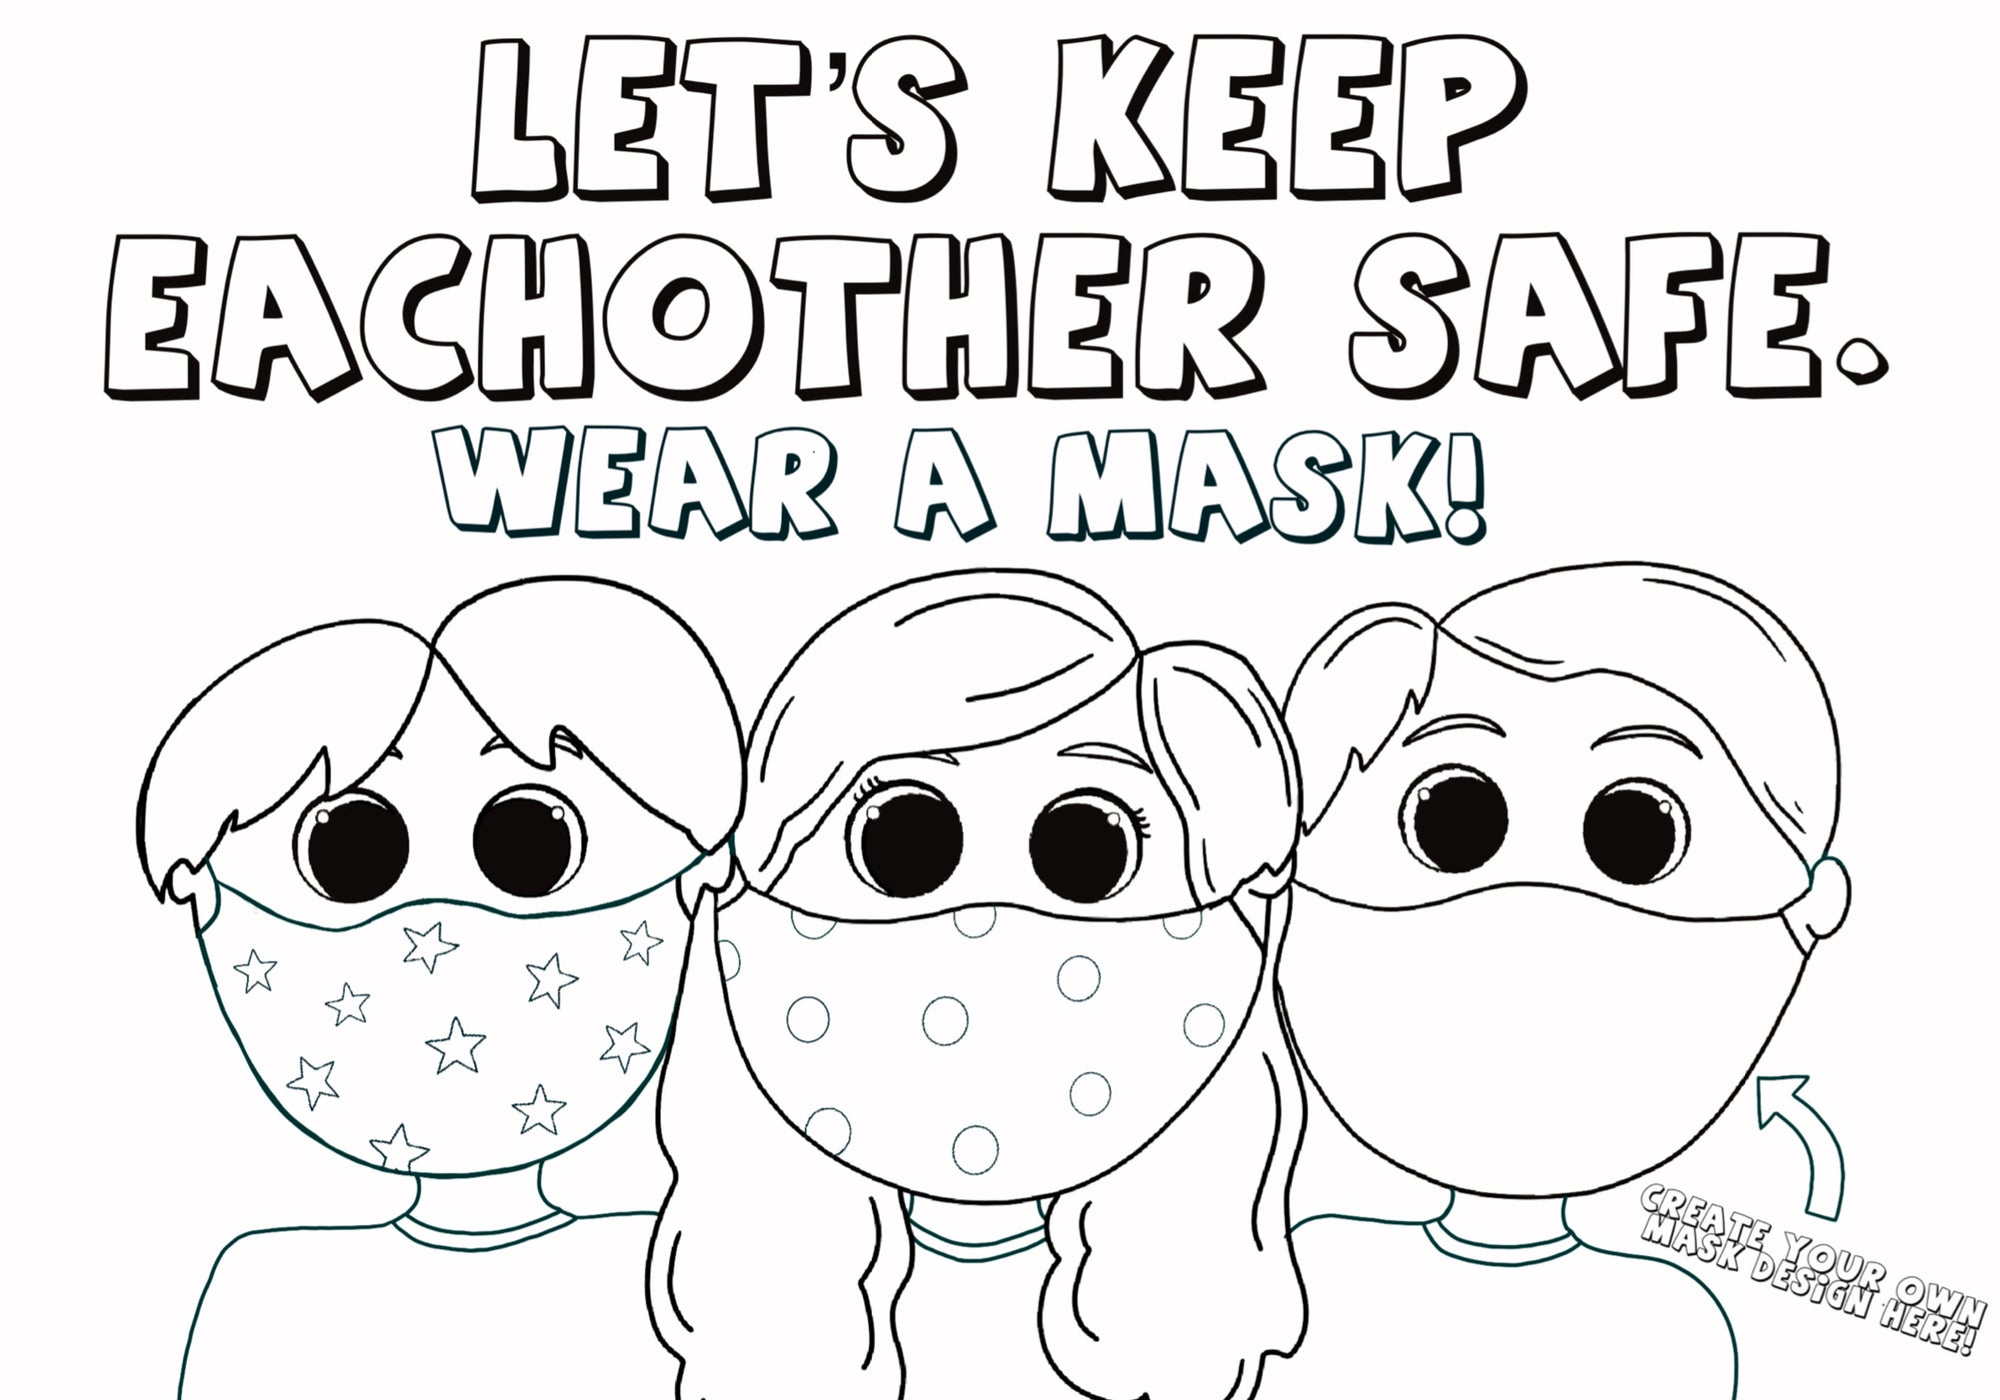 Kids Wearing Face Masks Coloring Page!